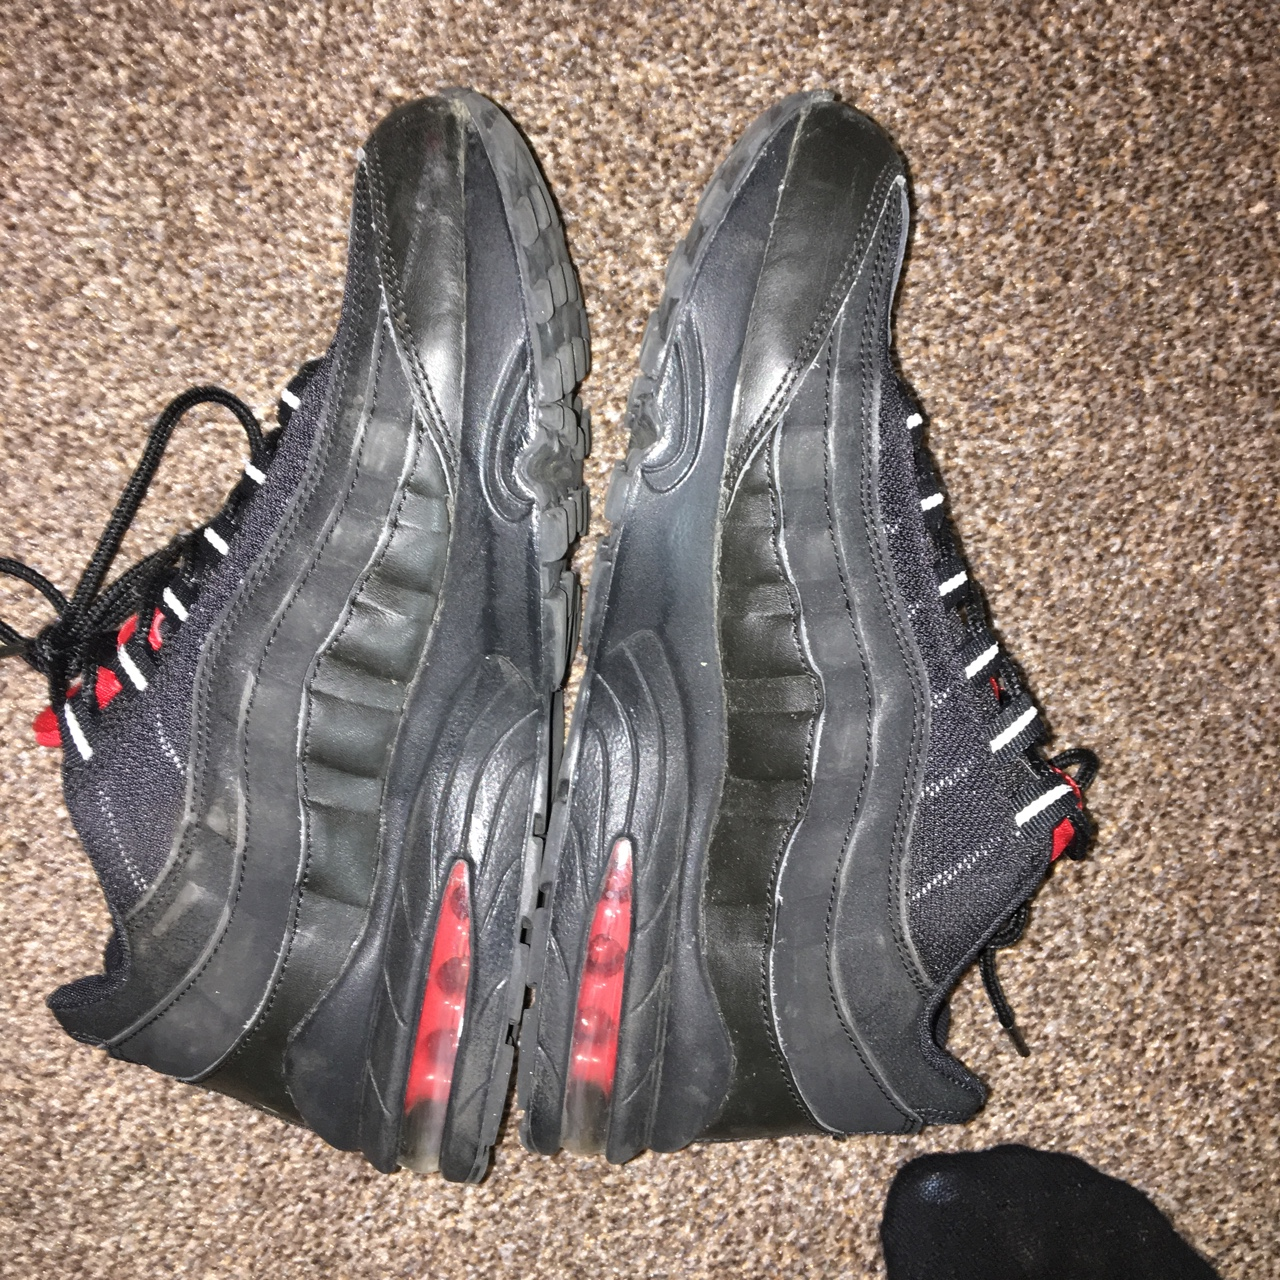 Nike AirMax 95 Black and red with reflective lace Depop